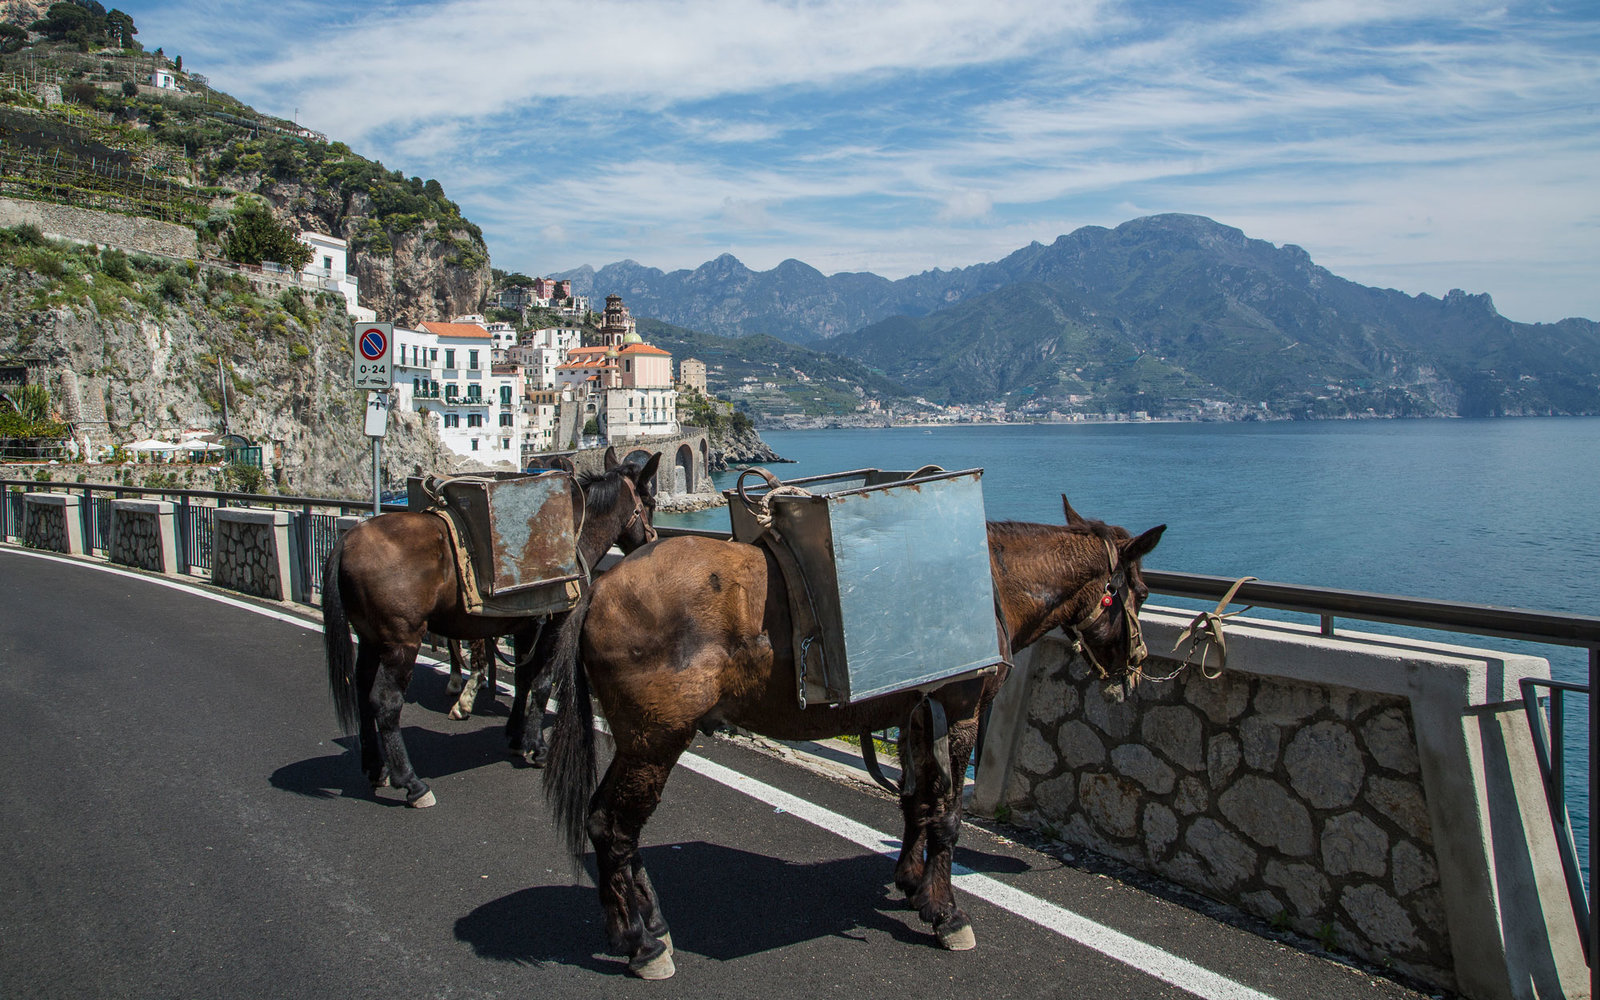 Mules in Atrani, on Amalfi Peninsula